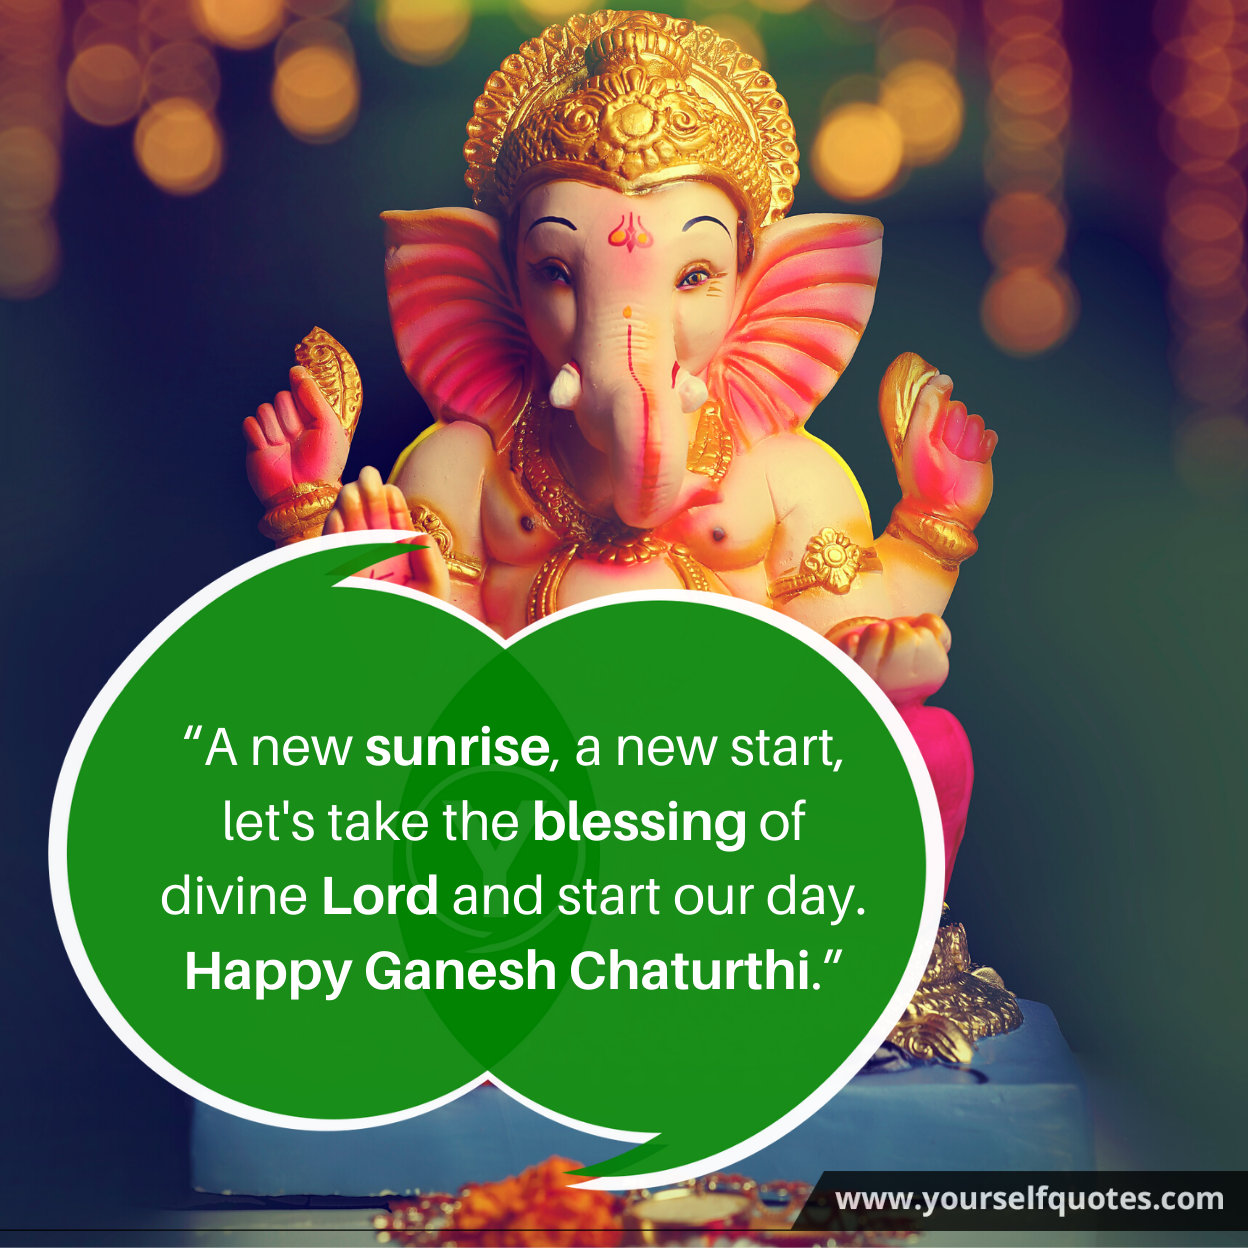 Happy Ganesh Chaturthi Quotes Images